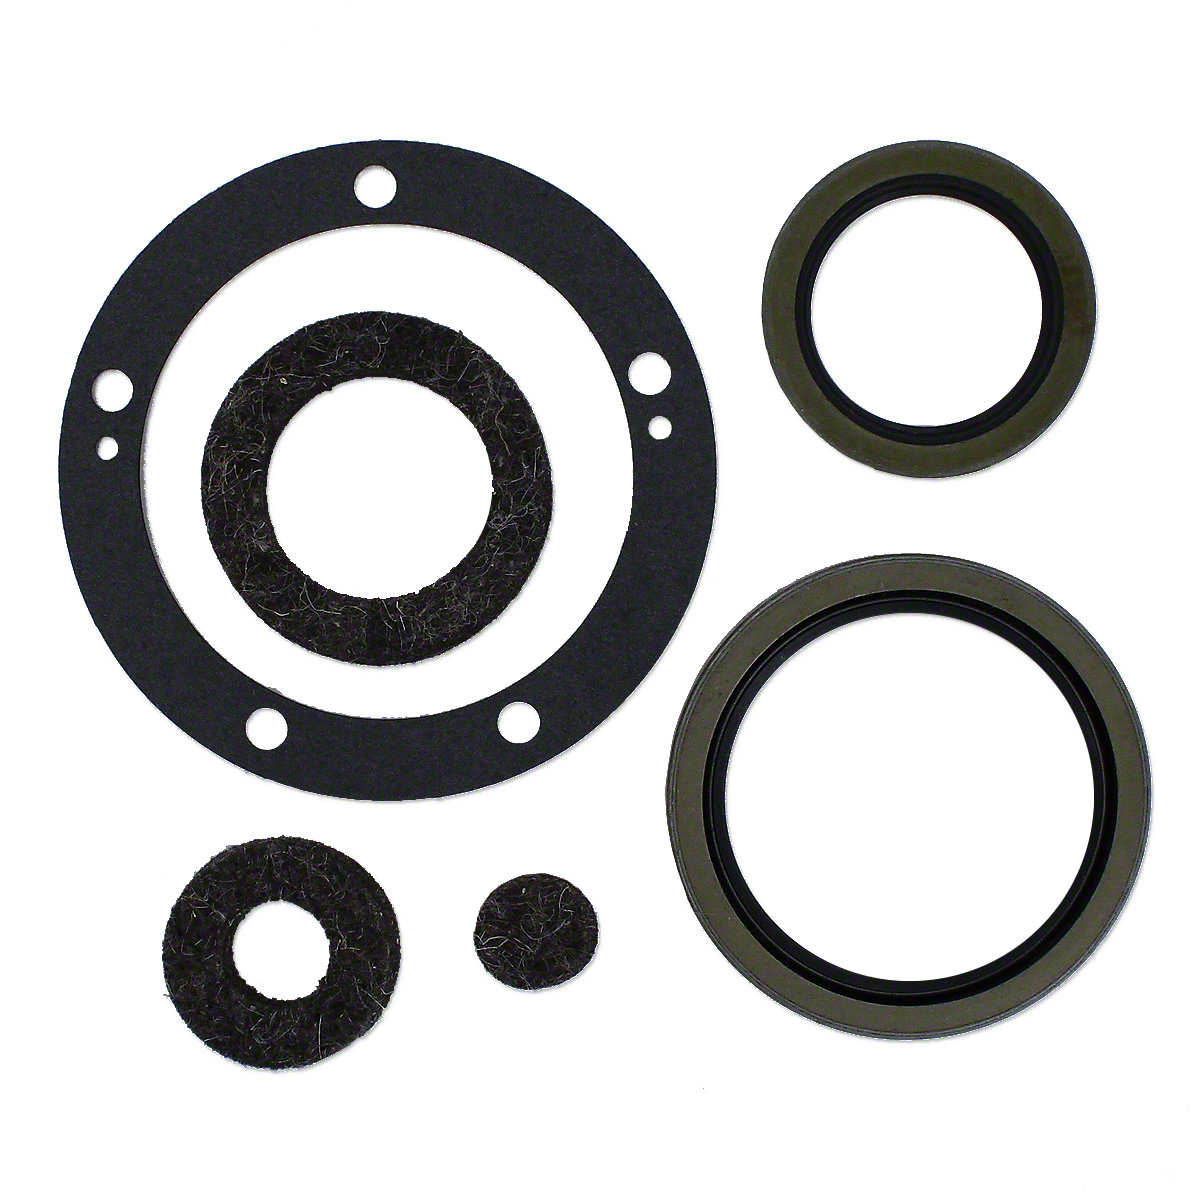 MFS1986 Crankshaft Seal Kit